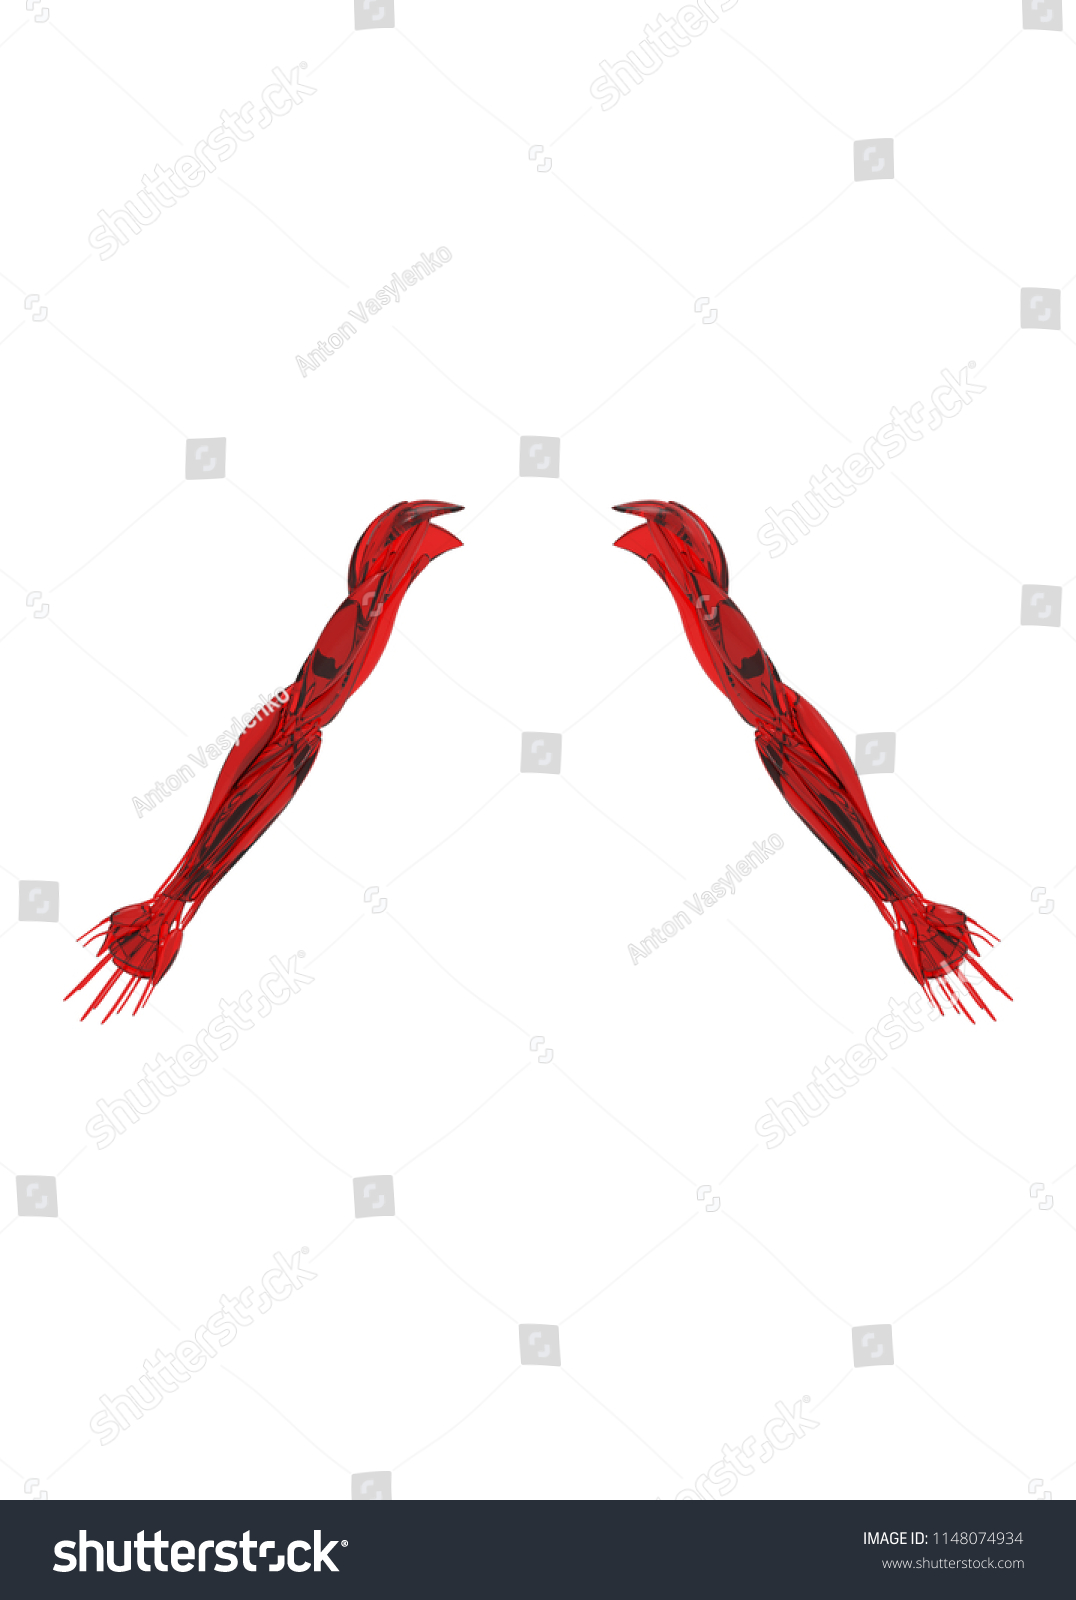 3 D Illustration Human Arms Muscles Stock Illustration 1148074934